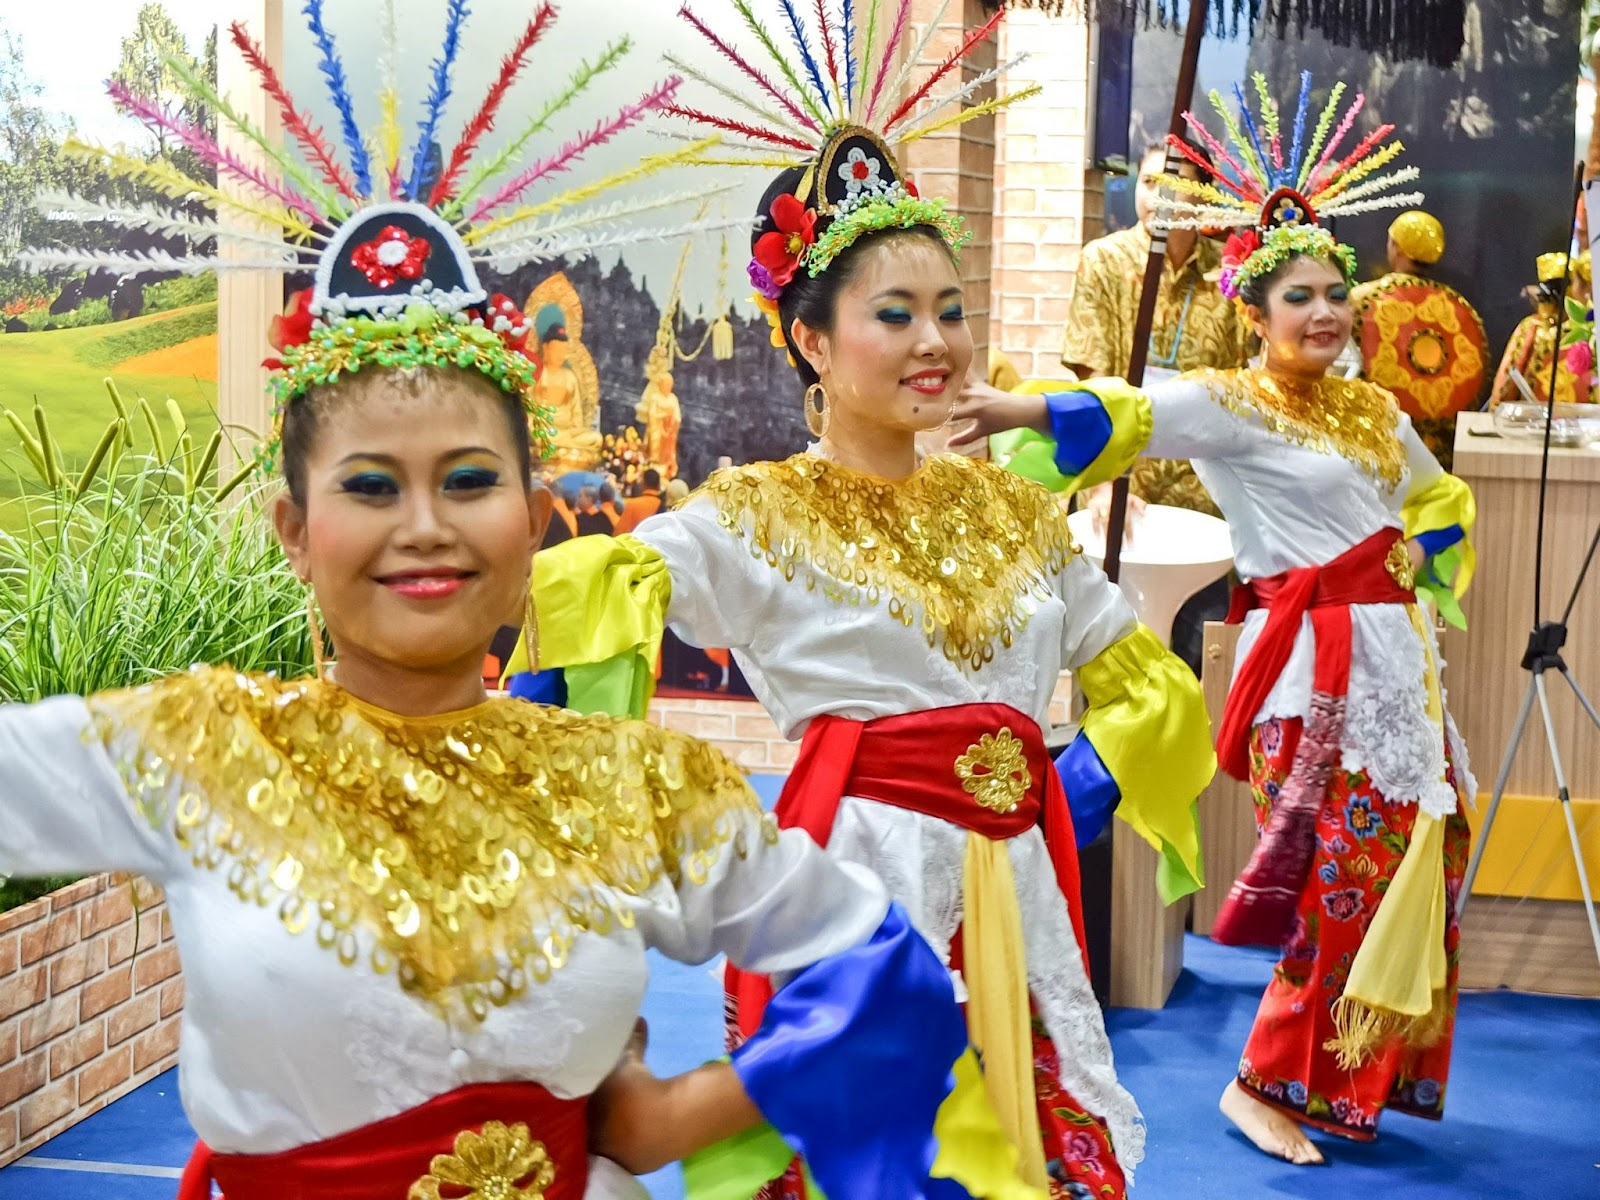 betawi as minorities In many societies they include migrants and ethnic minorities as well  being  betawi, the native population of the city, these young men have.